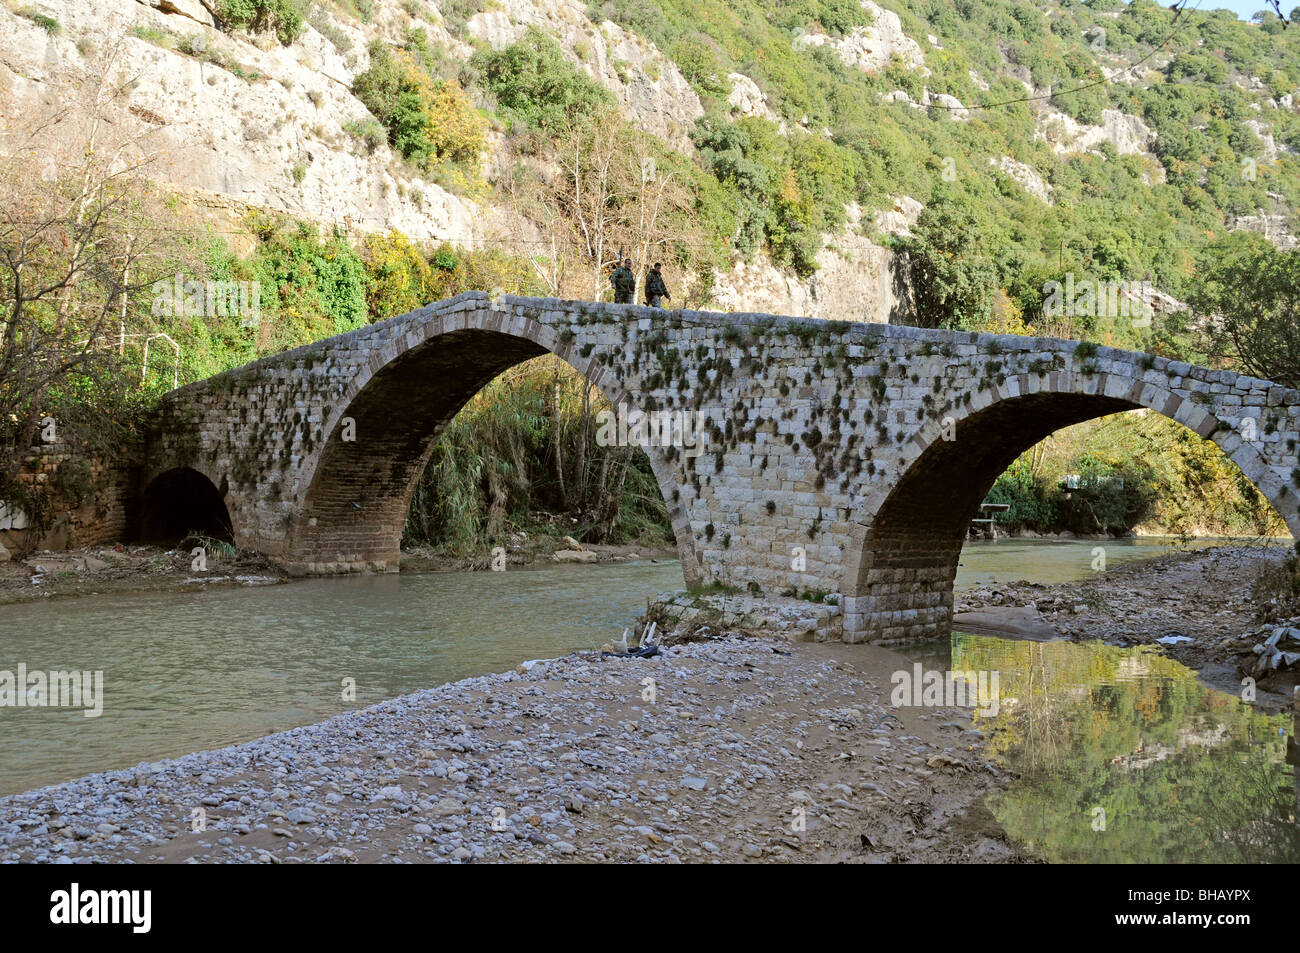 Two Lebanese army soldiers on patrol atop an old arched Mamluk era stone bridge above the  Dog River (Nahr al Kalb), - Stock Image